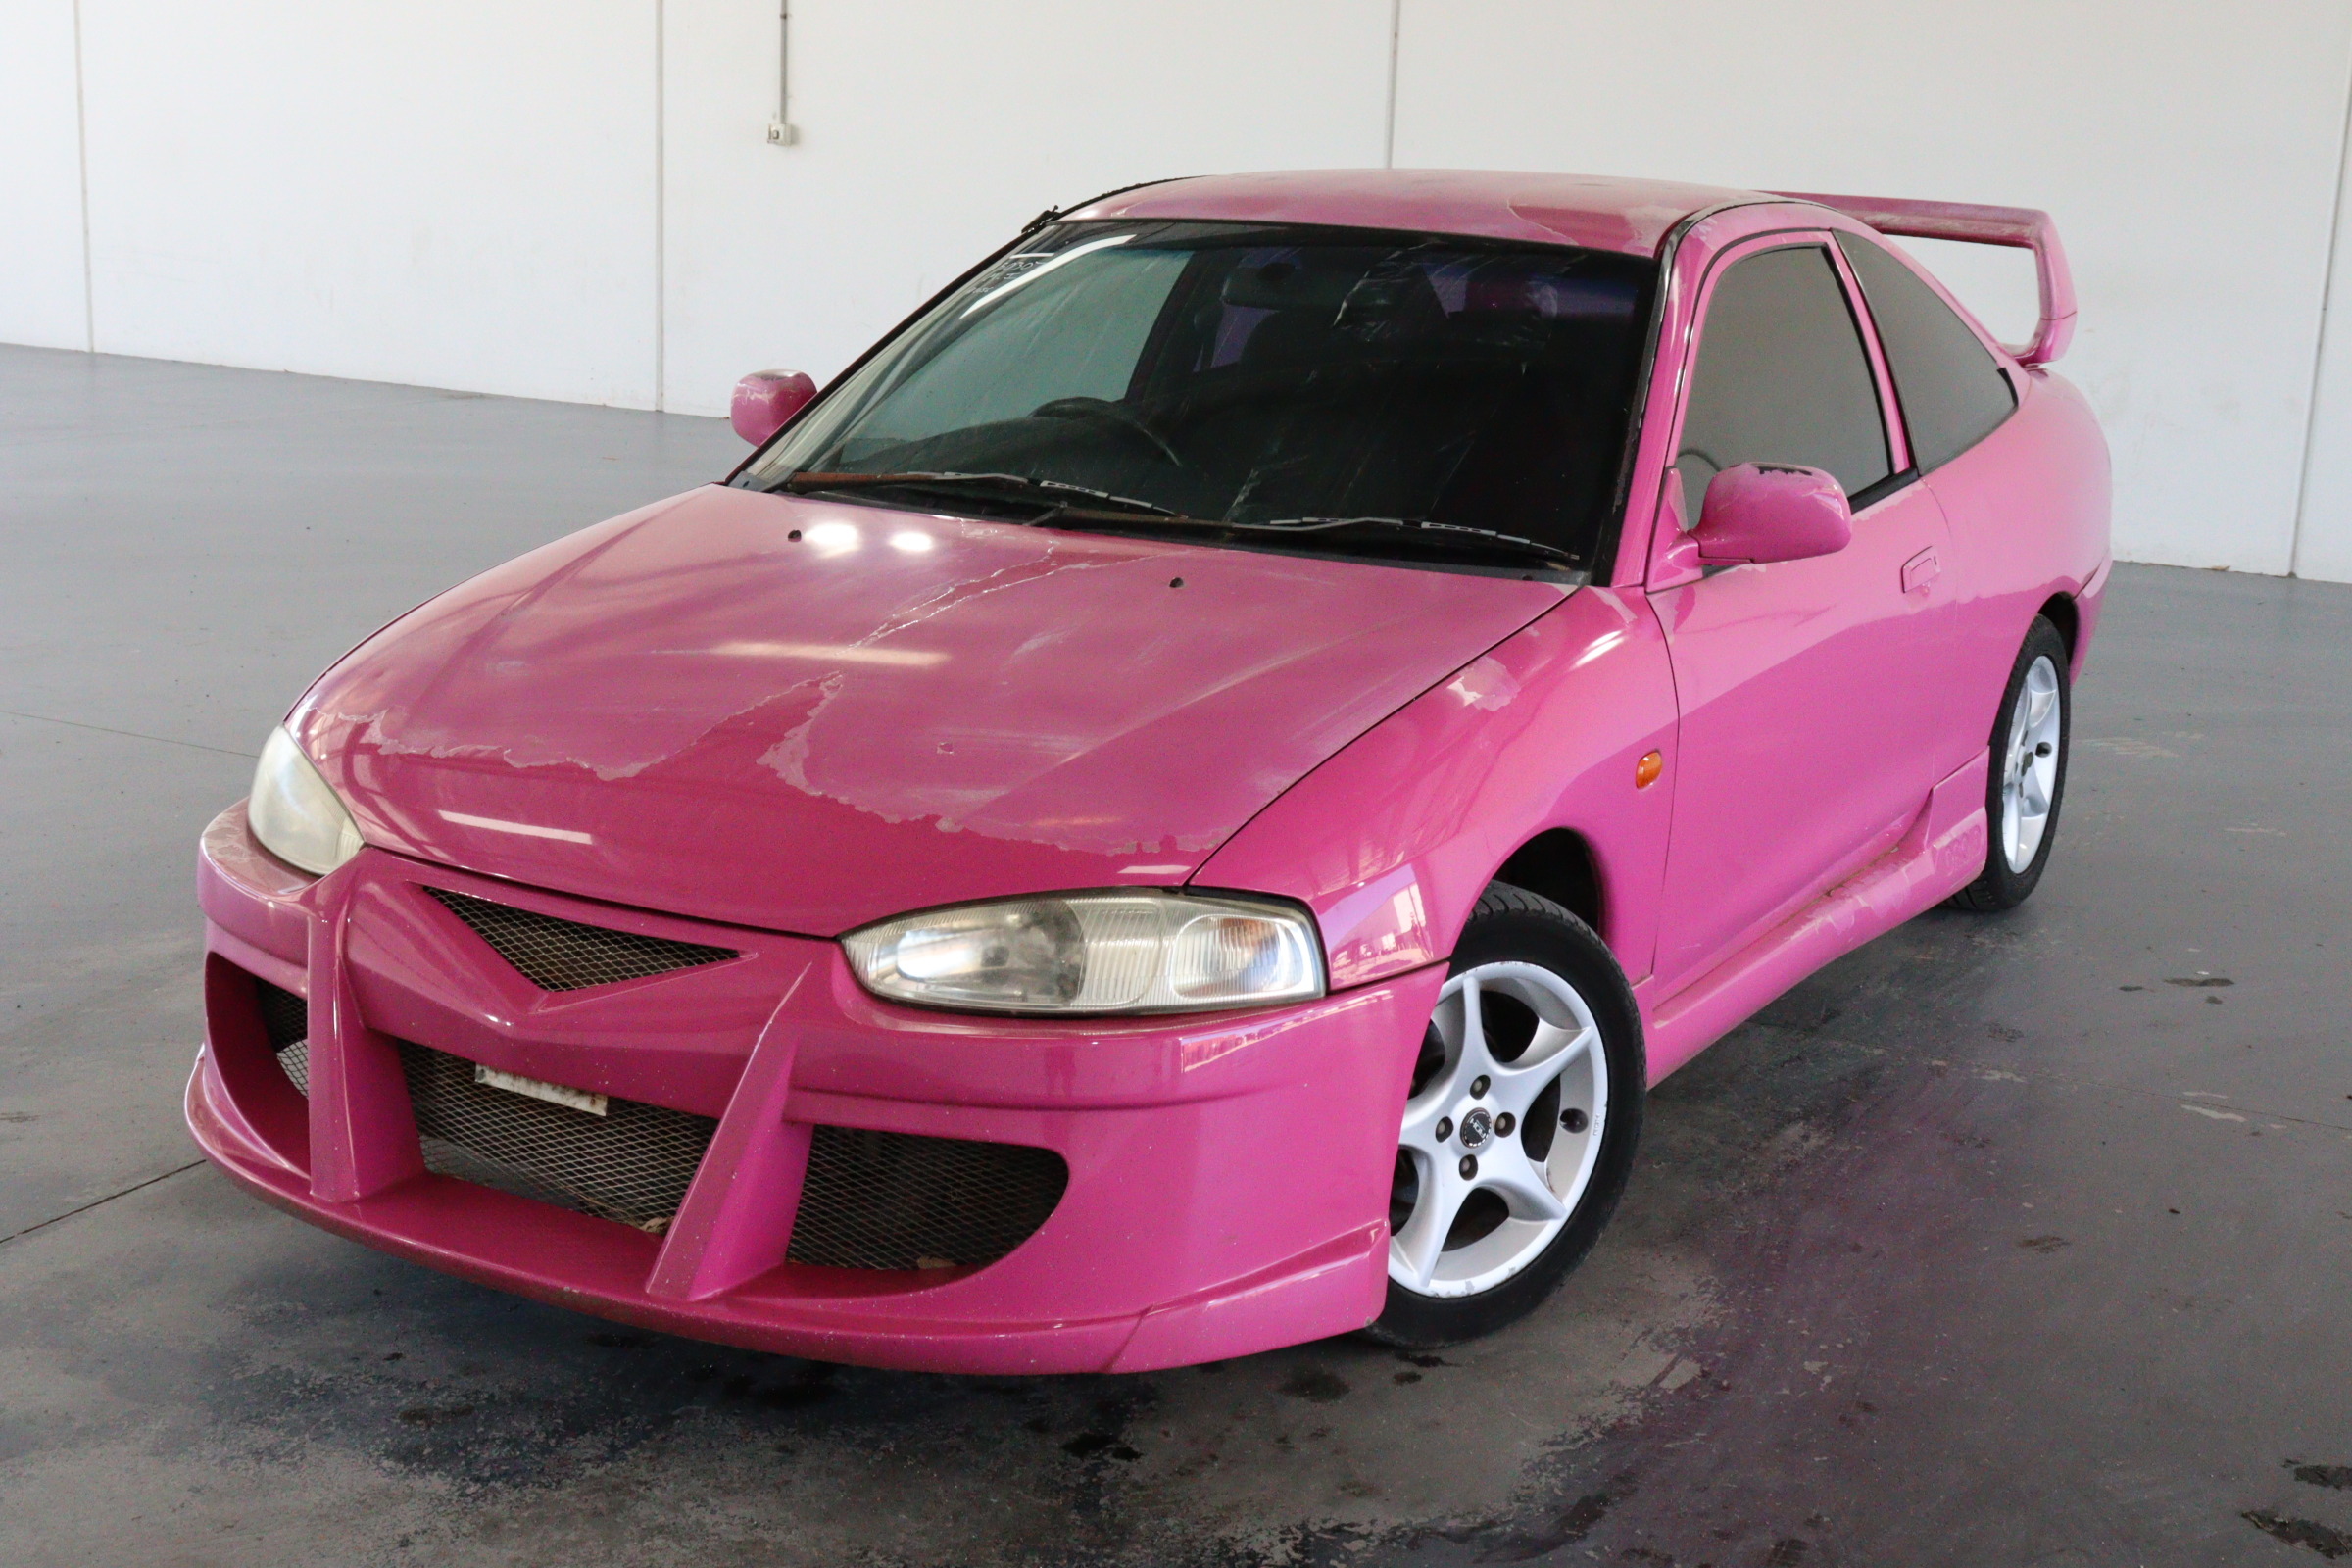 2000 Mitsubishi Lancer MR CE Automatic Coupe (WOVR Inspected)